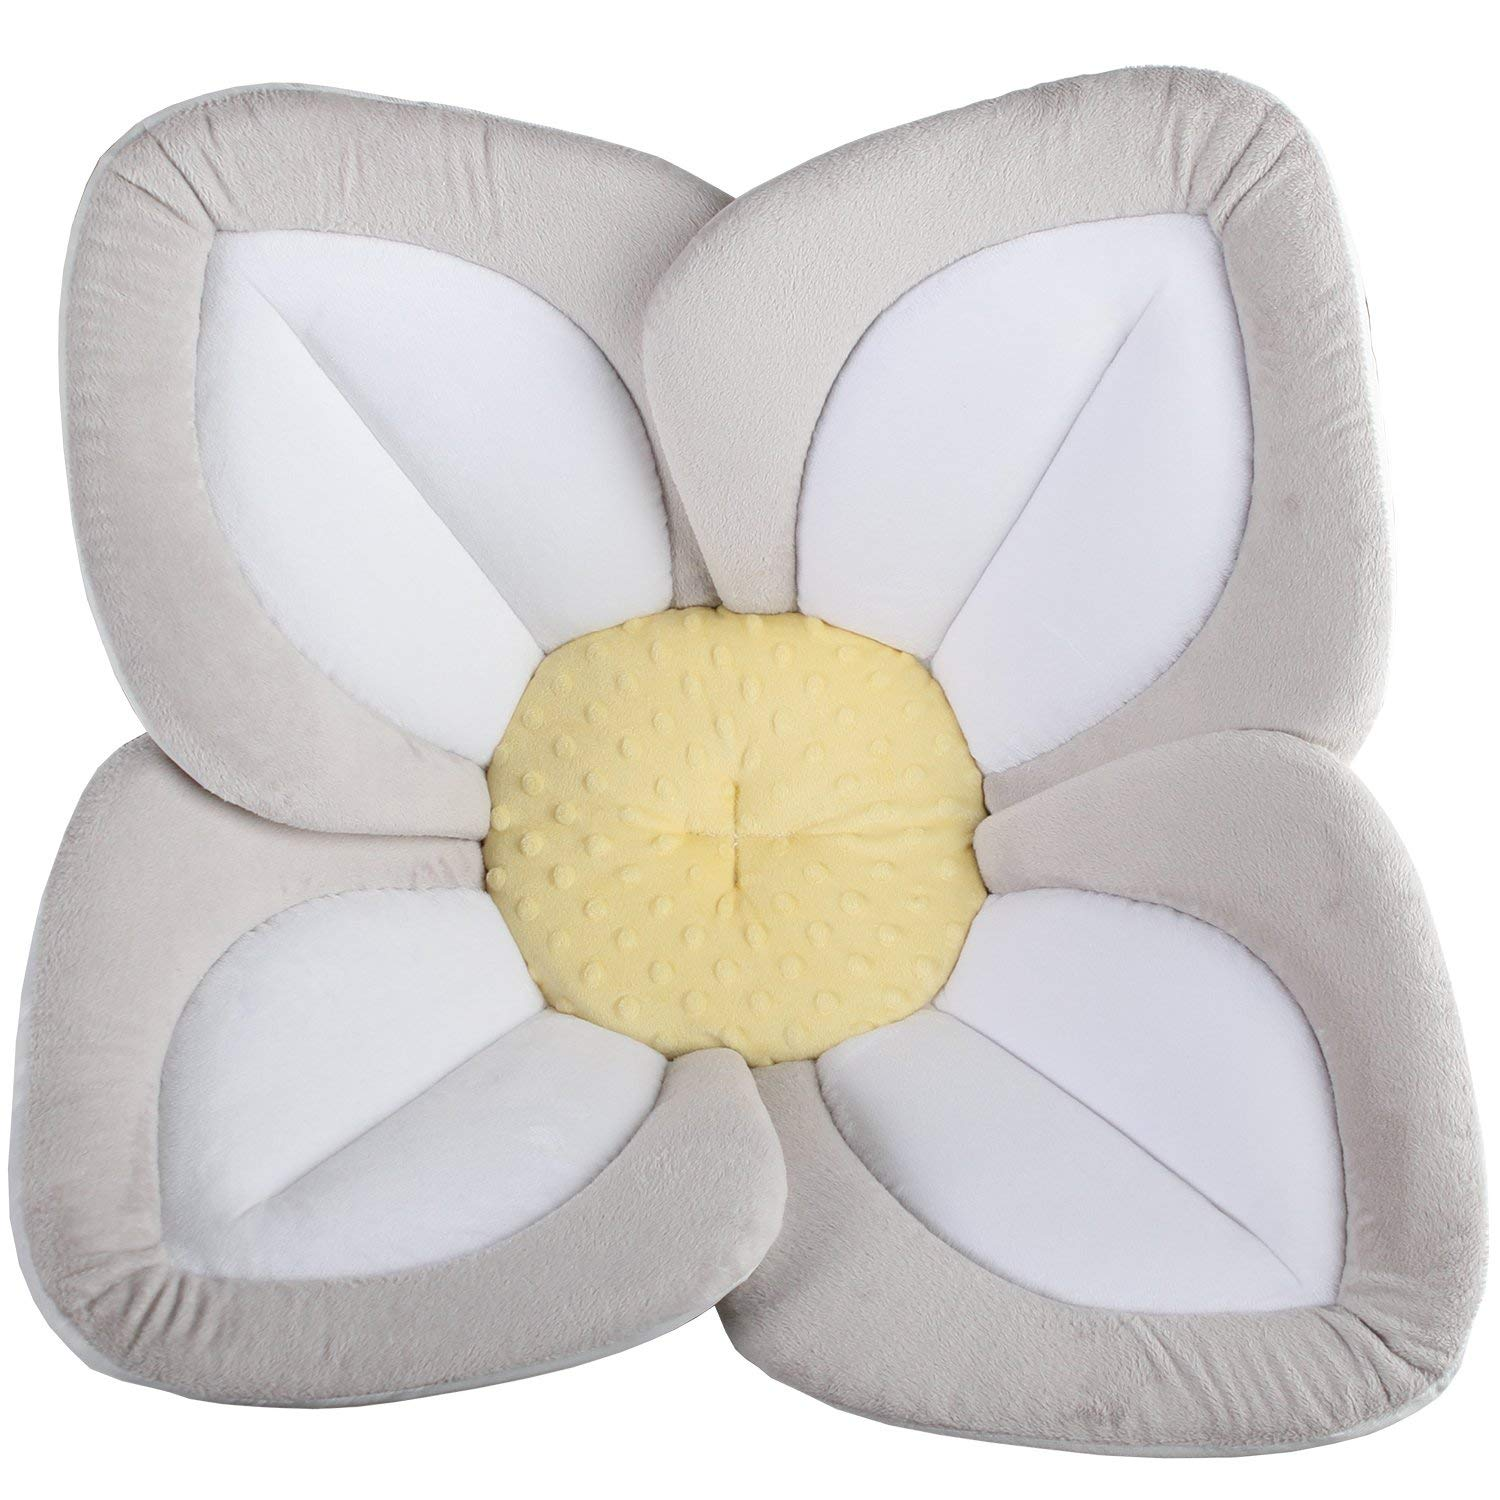 Blooming Bath Lotus - Baby Bath (Gray/Light Yellow) by Blooming Bath